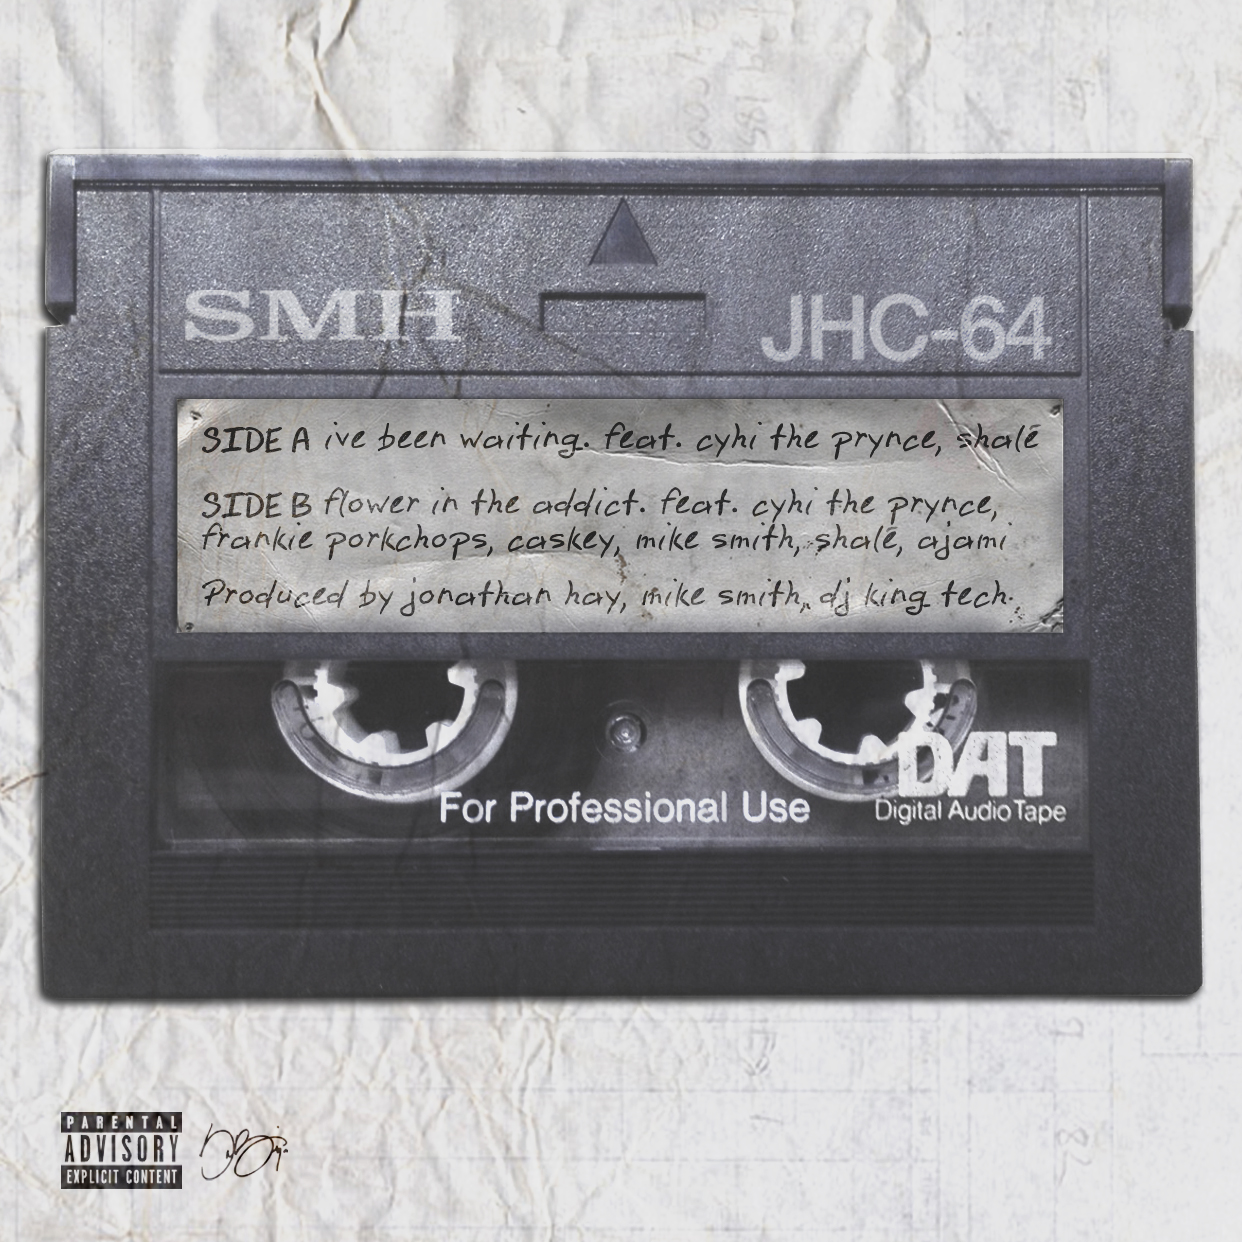 The DAT Tape singles Ive Been Waiting Flower In The Attic by Cyhi the Prynce Shalé Jonathan Hay Mike Smith King Tech Fra